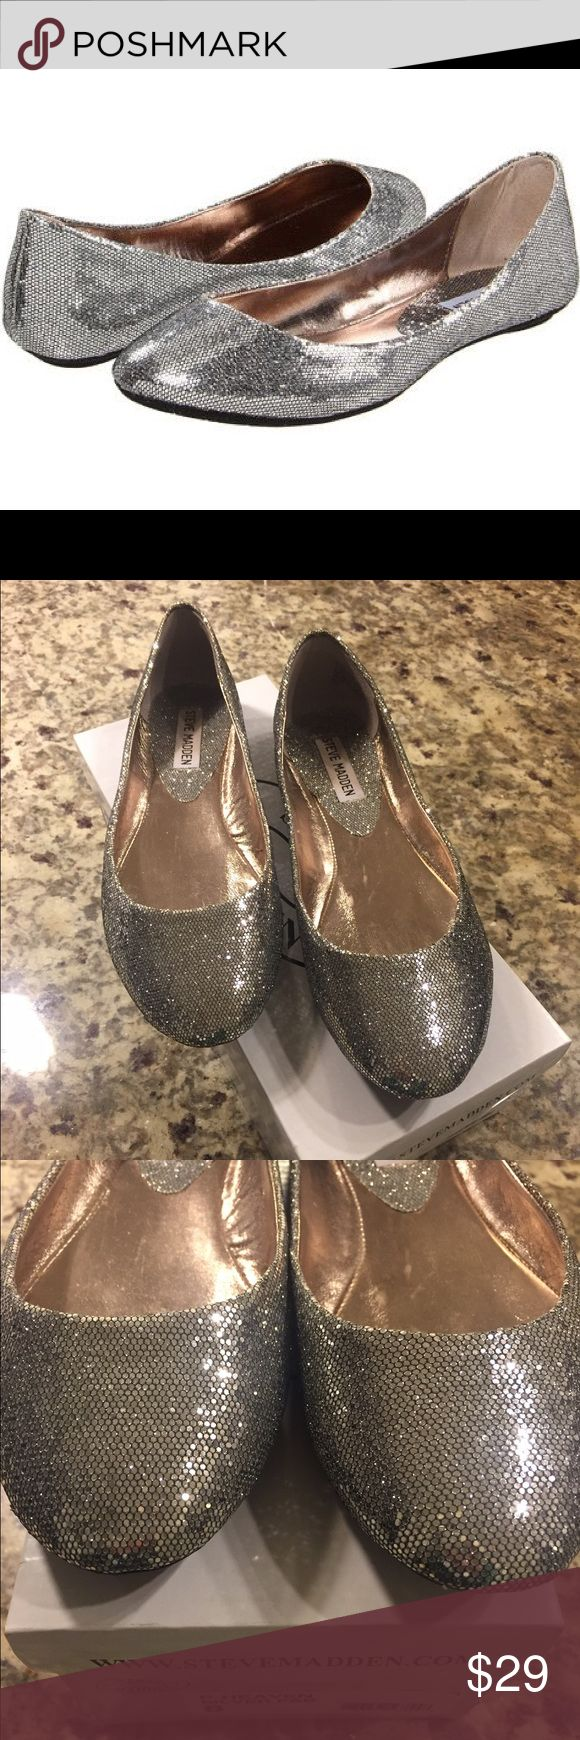 """Steve Madden P-Heaven Flats STEVE MADDEN P-Heaven flats. Size 8. NWT, never worn. Color is """"silver fab."""" Perfect condition, have been stored in plastic and in original box (see last picture). Just the right amount of glitter and sparkle! Steve Madden Shoes Flats & Loafers"""